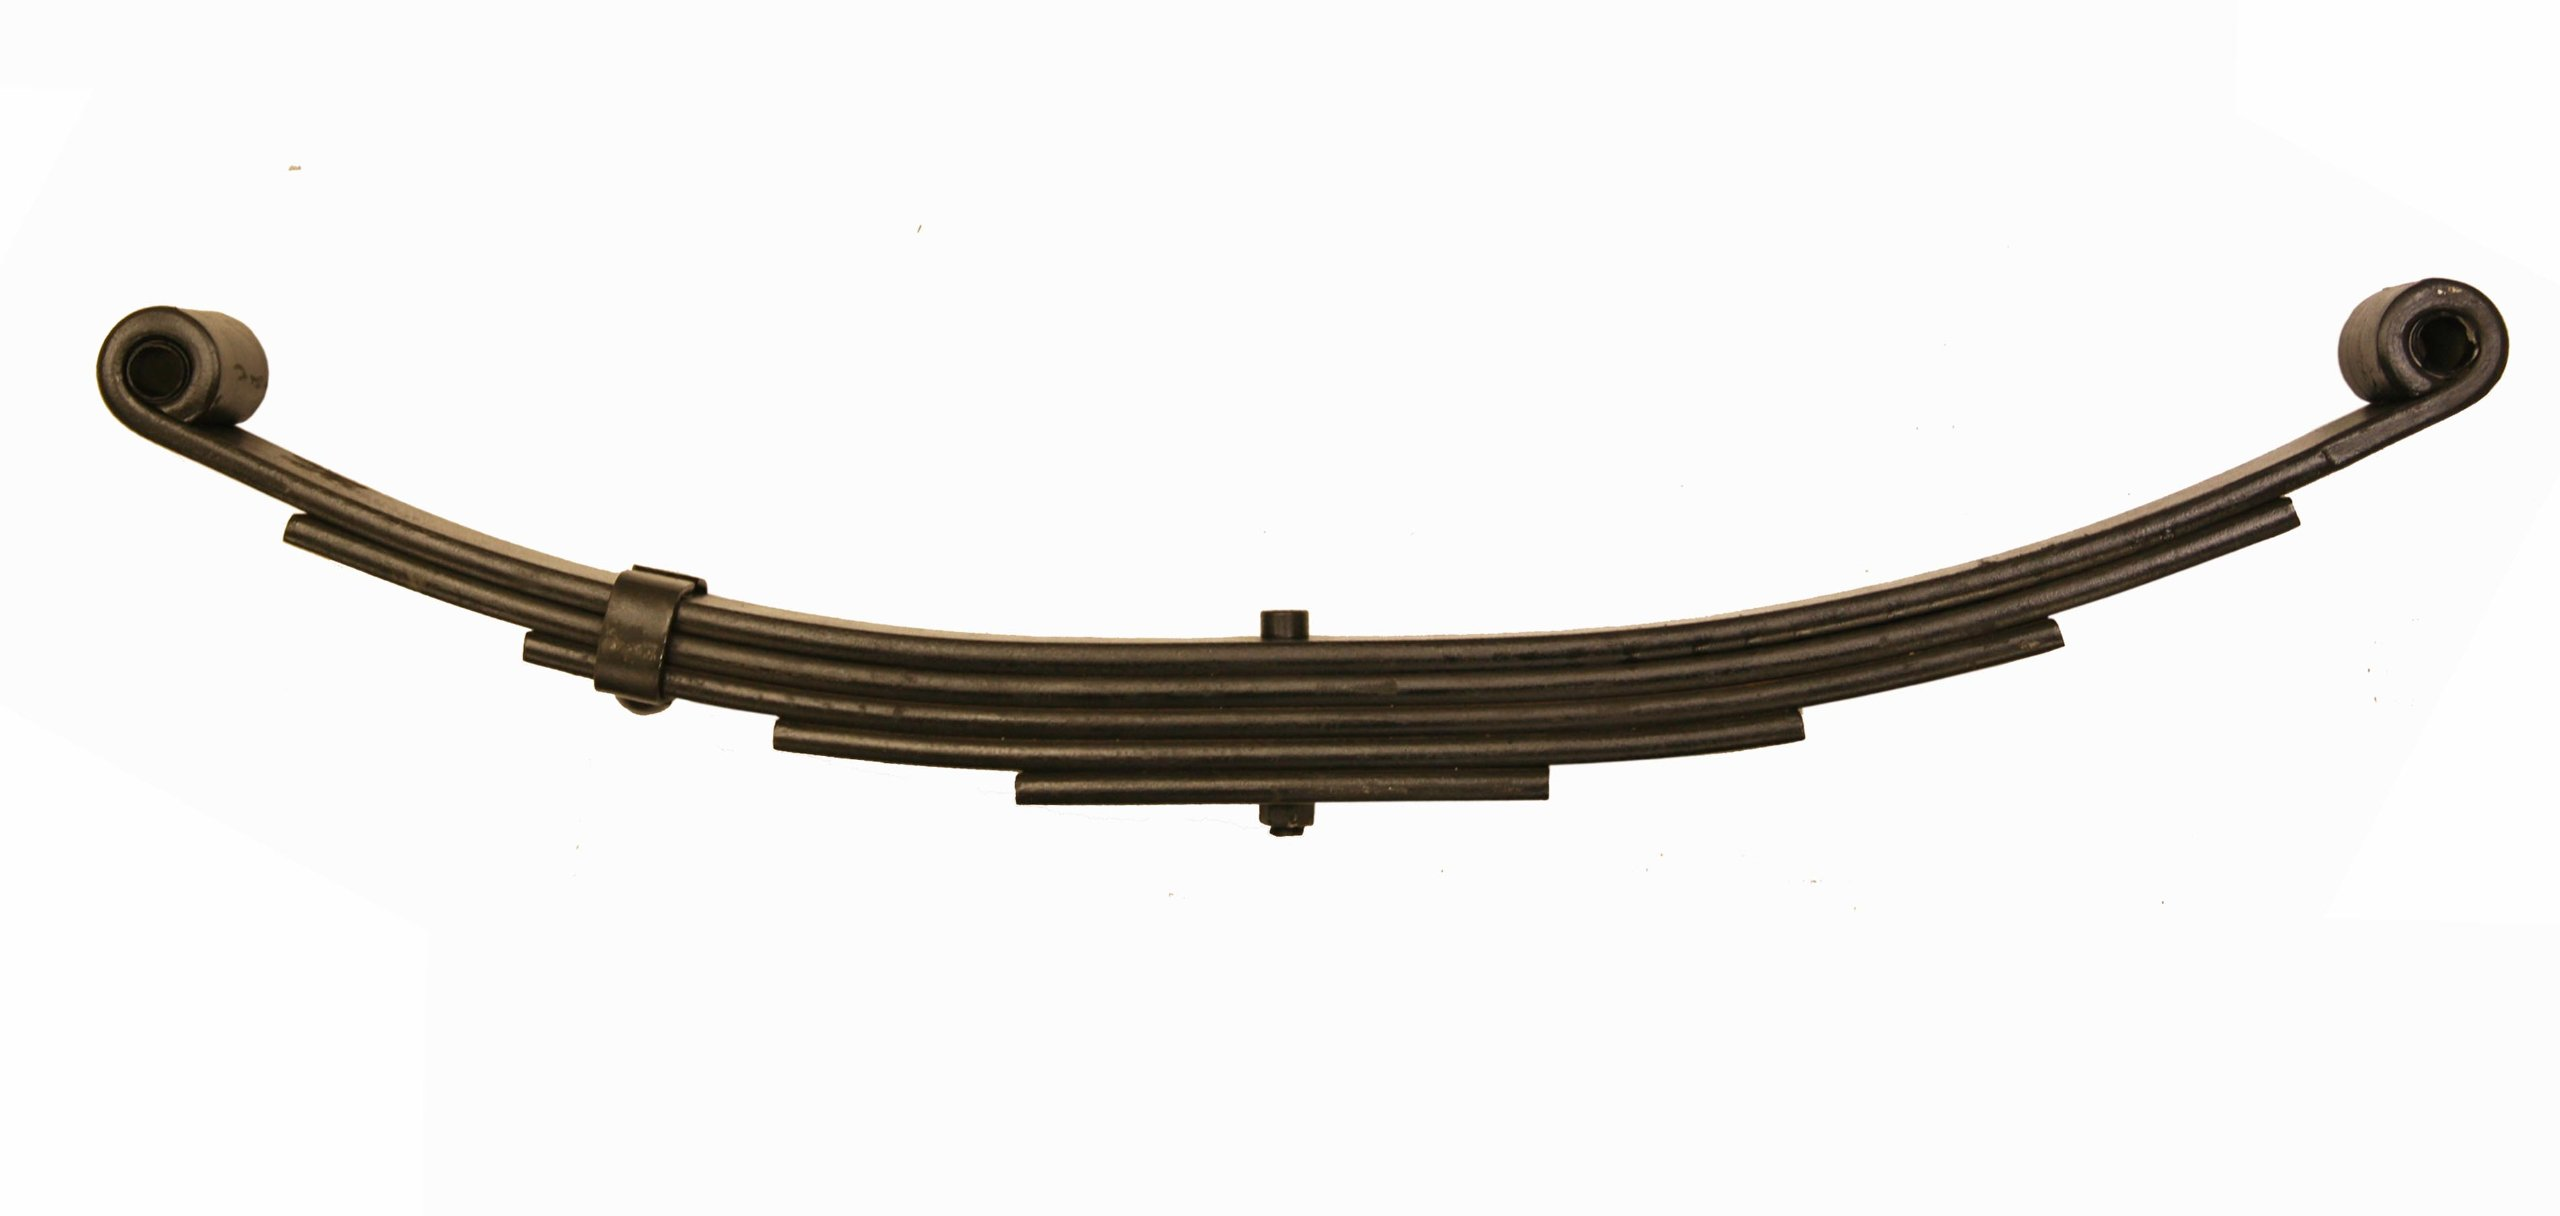 LIBRA New Trailer Leaf Spring-5 Leaf Double Eye 3000lbs for 6000 Lbs Axle - 20025 by LIBRA